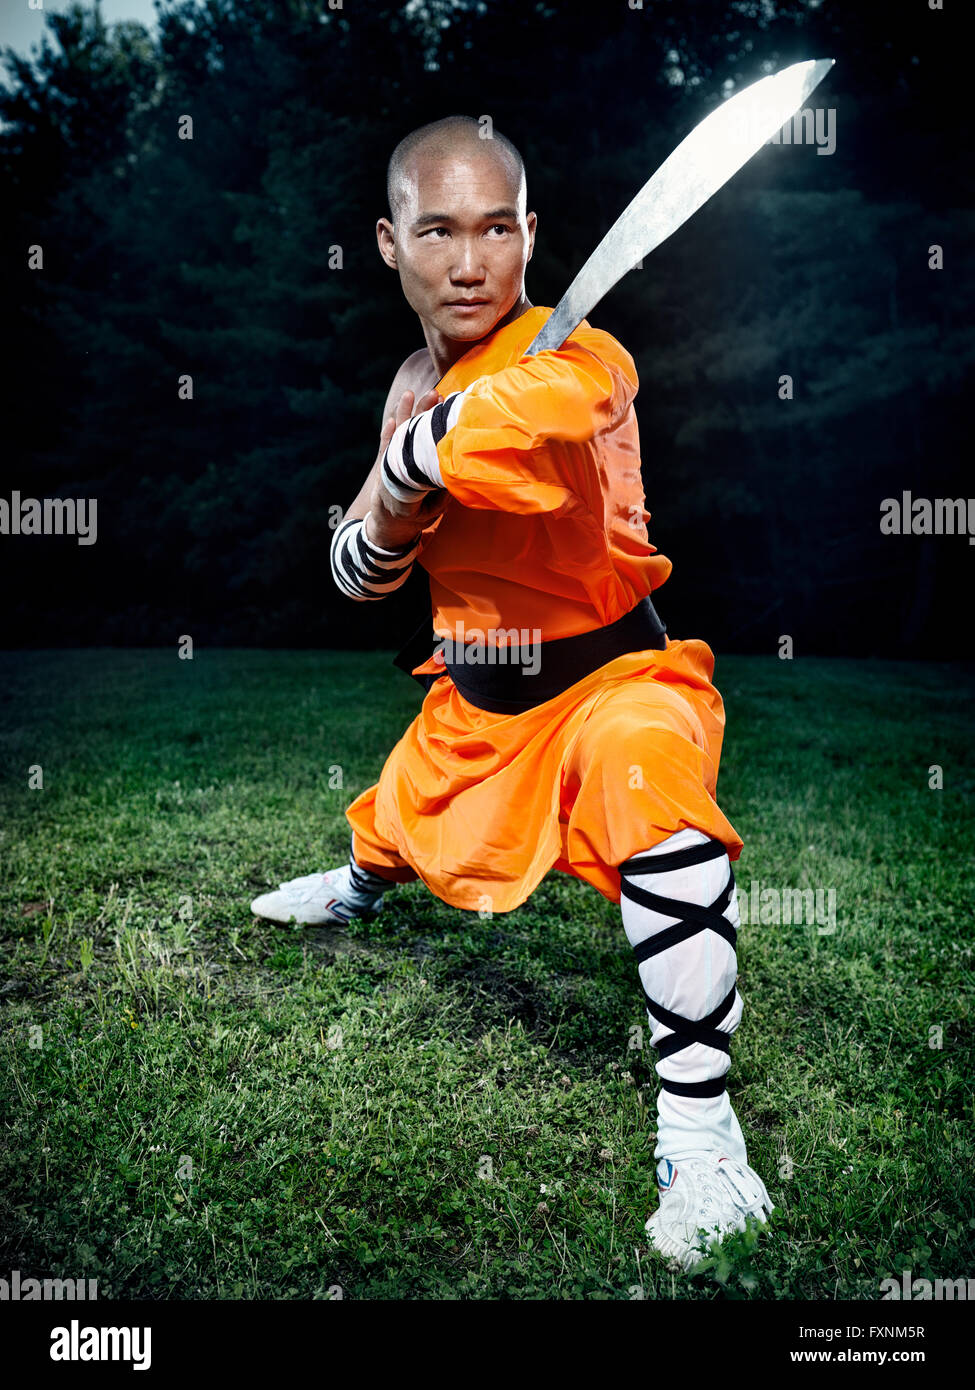 Shaolin warrior monk in a gong bu stance with a broad sword practicing Kung Fu outdoors - Stock Image